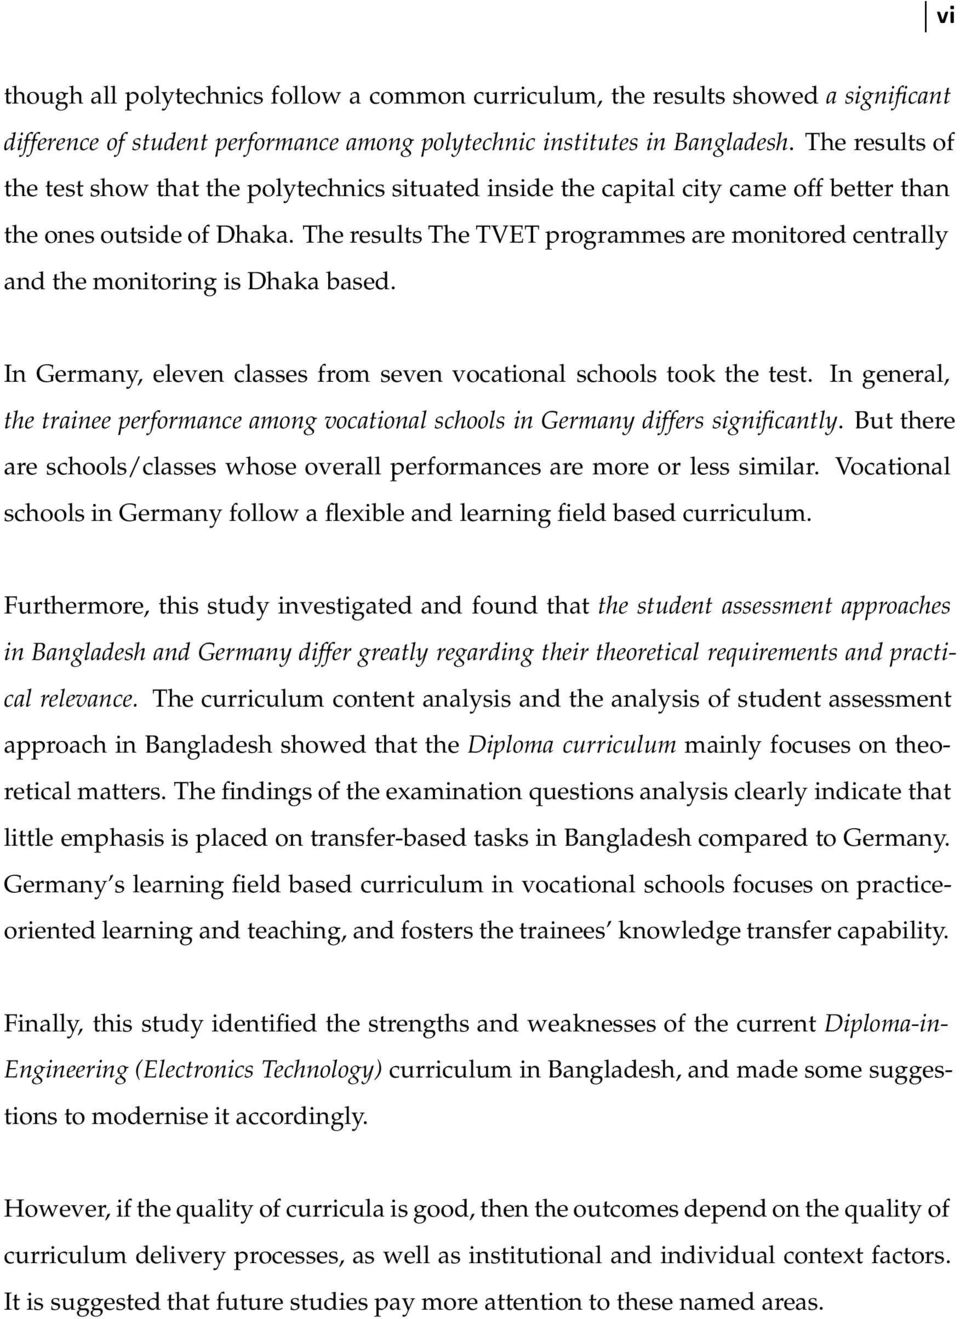 The results The TVET programmes are monitored centrally and the monitoring is Dhaka based. In Germany, eleven classes from seven vocational schools took the test.